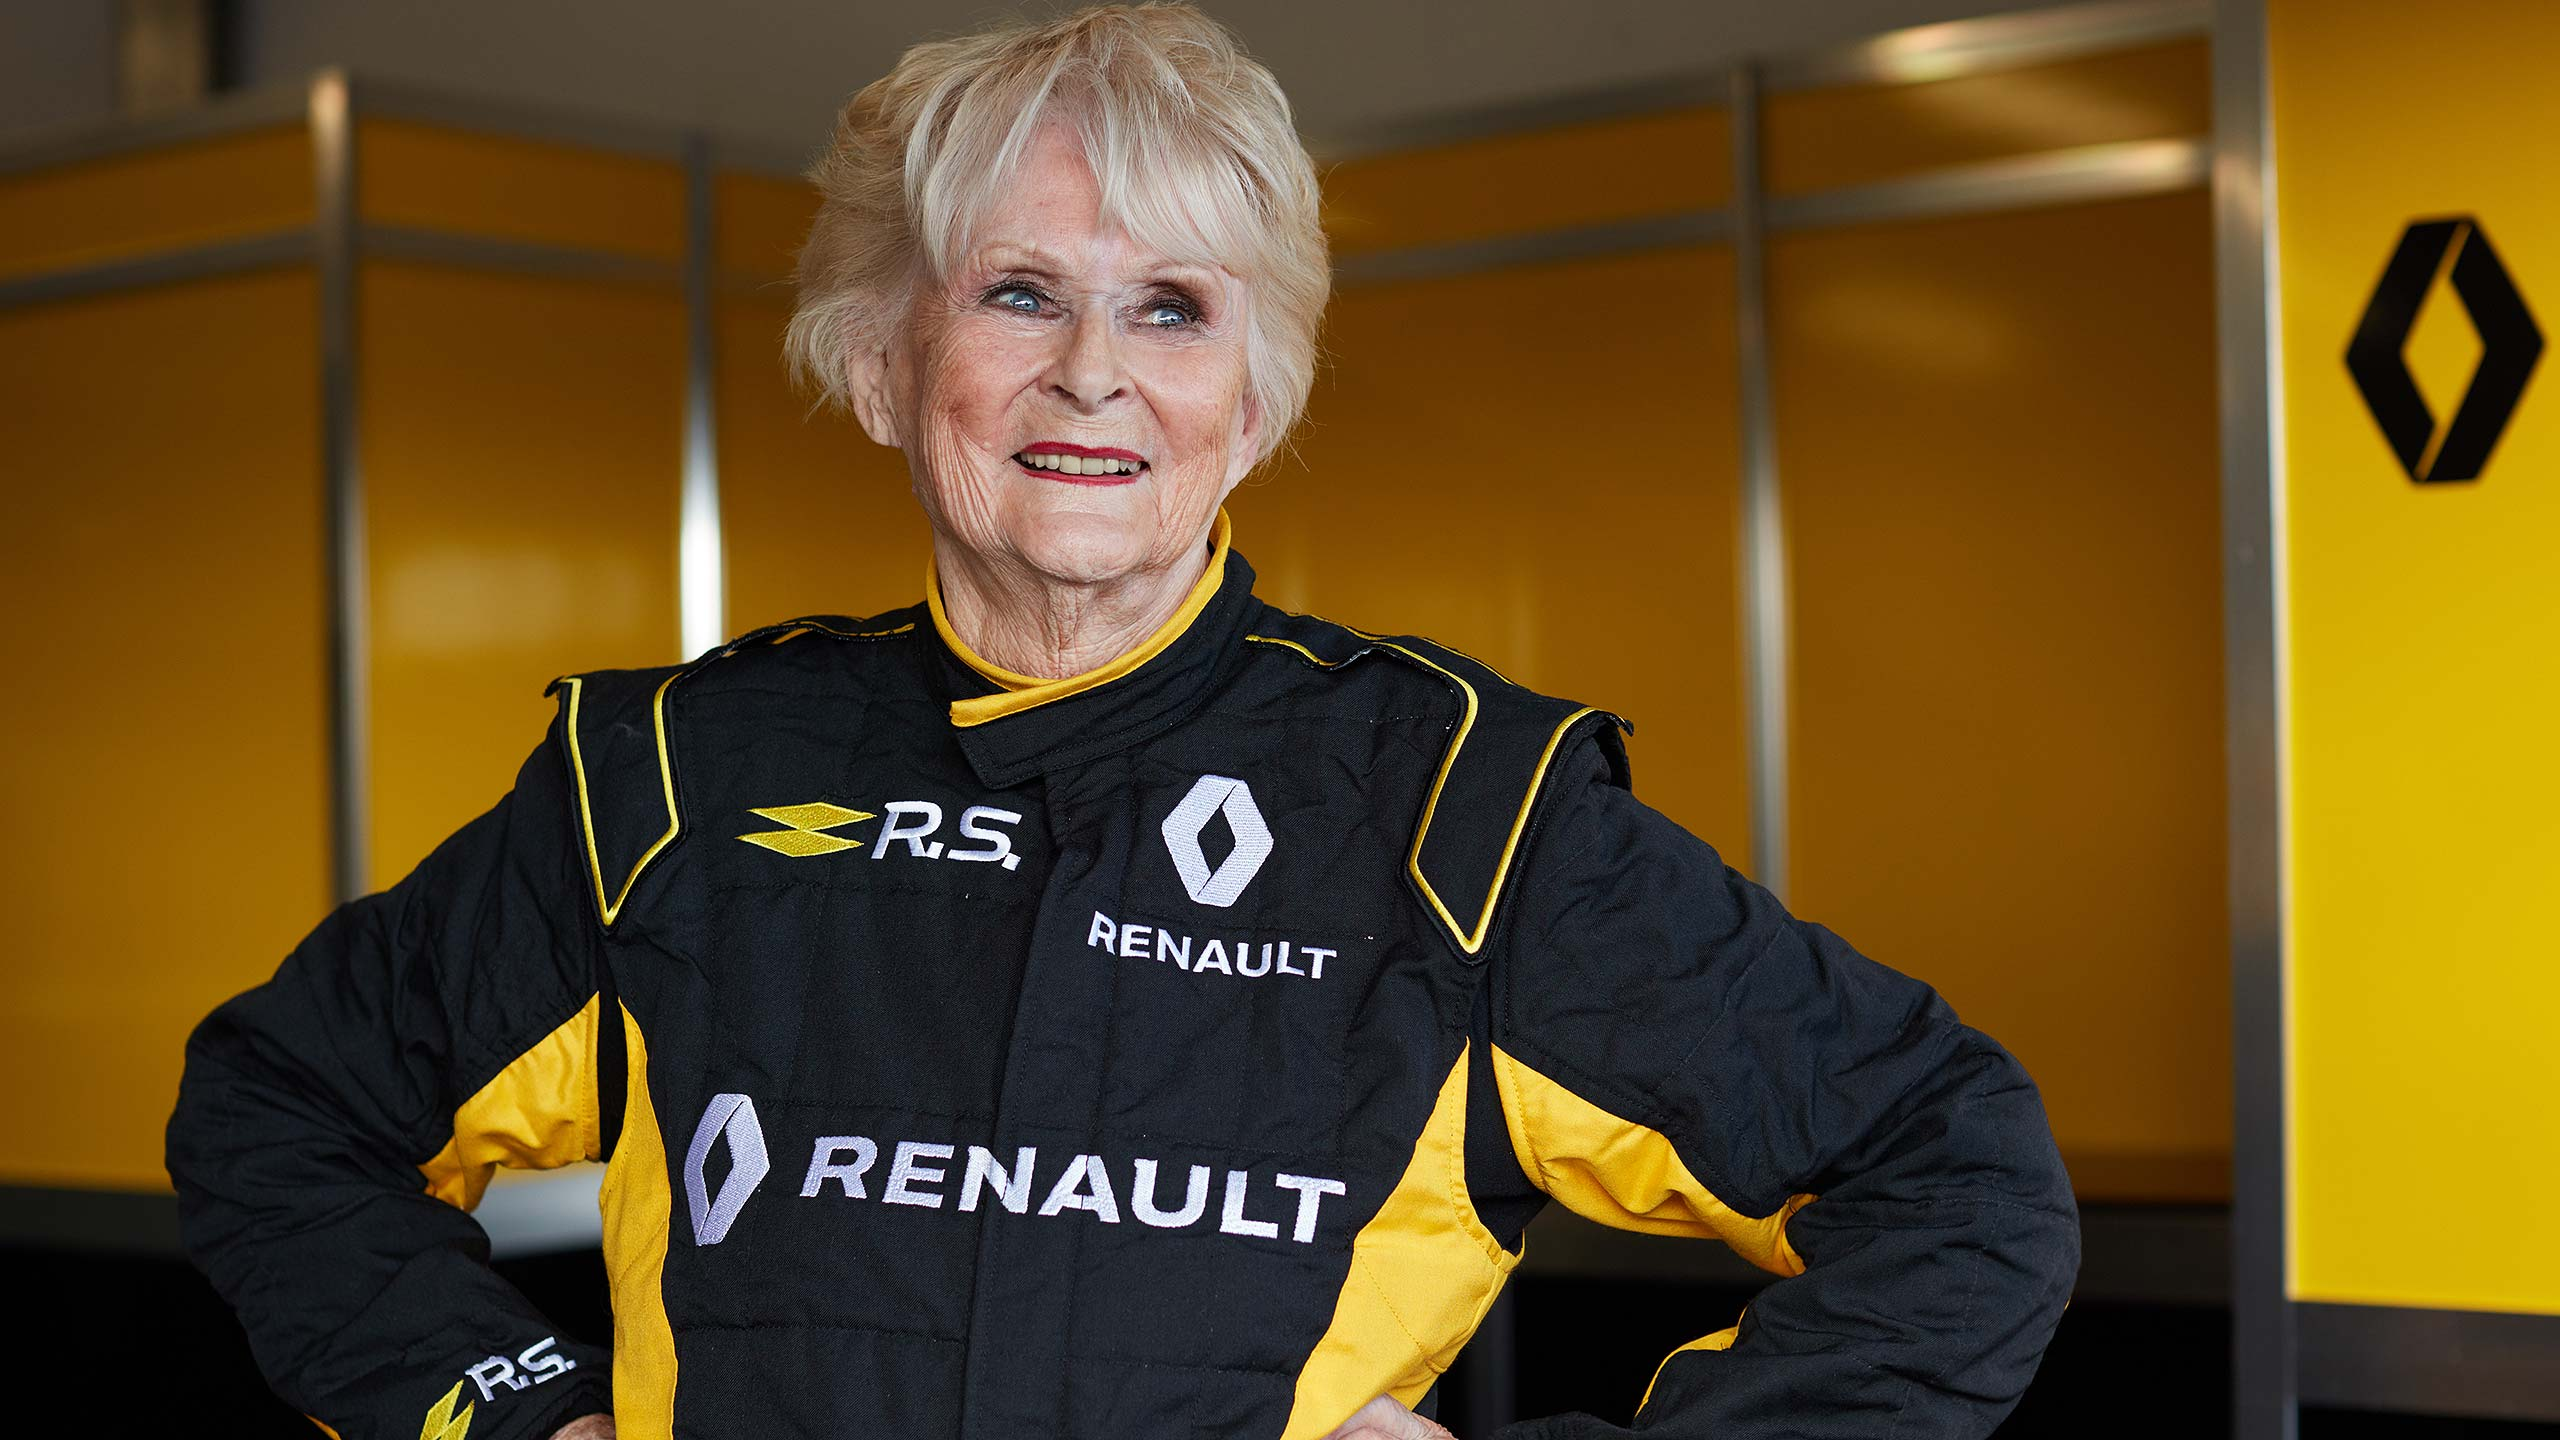 Renault Sport F1 Rosemary Smith